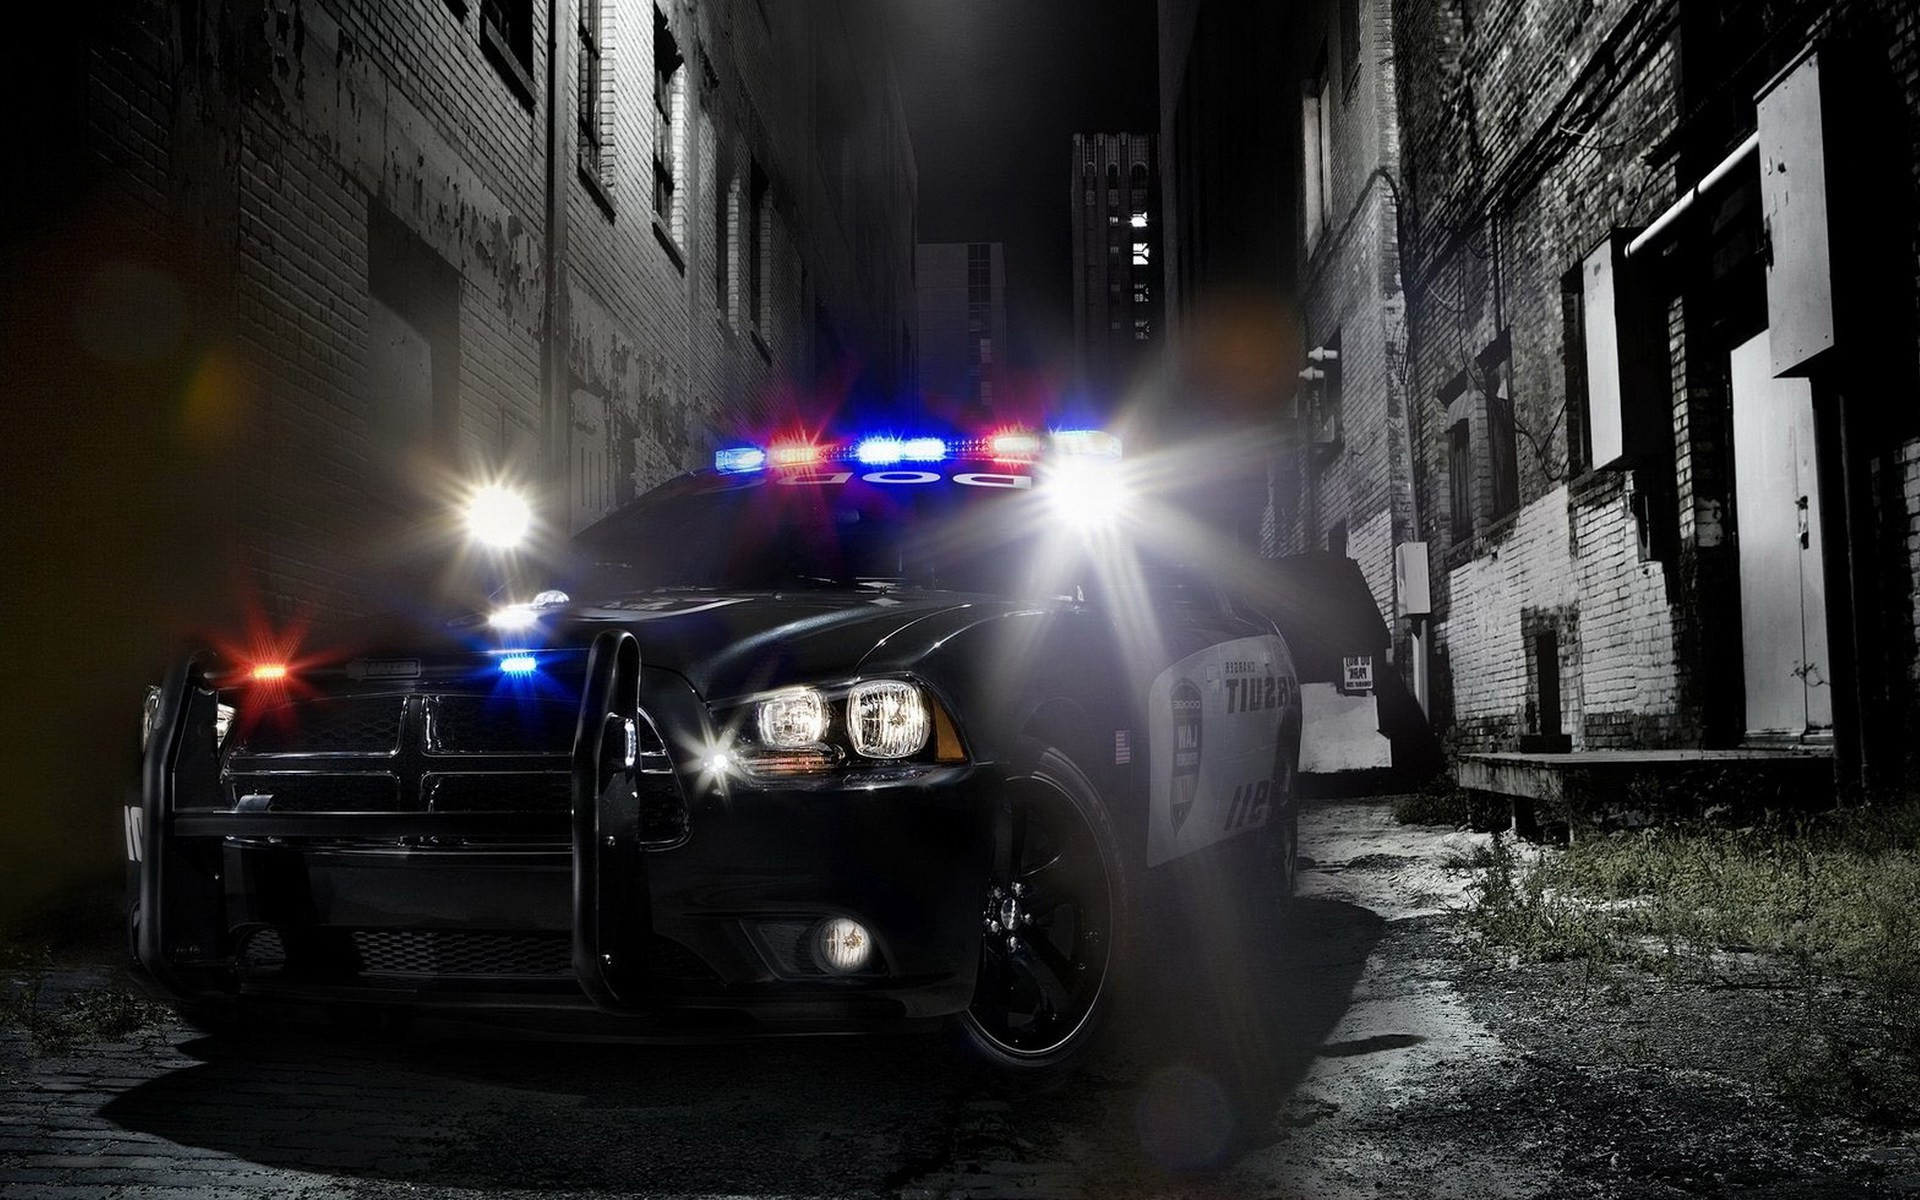 Police Car Wallpaper Background Hd All About Gallery Car